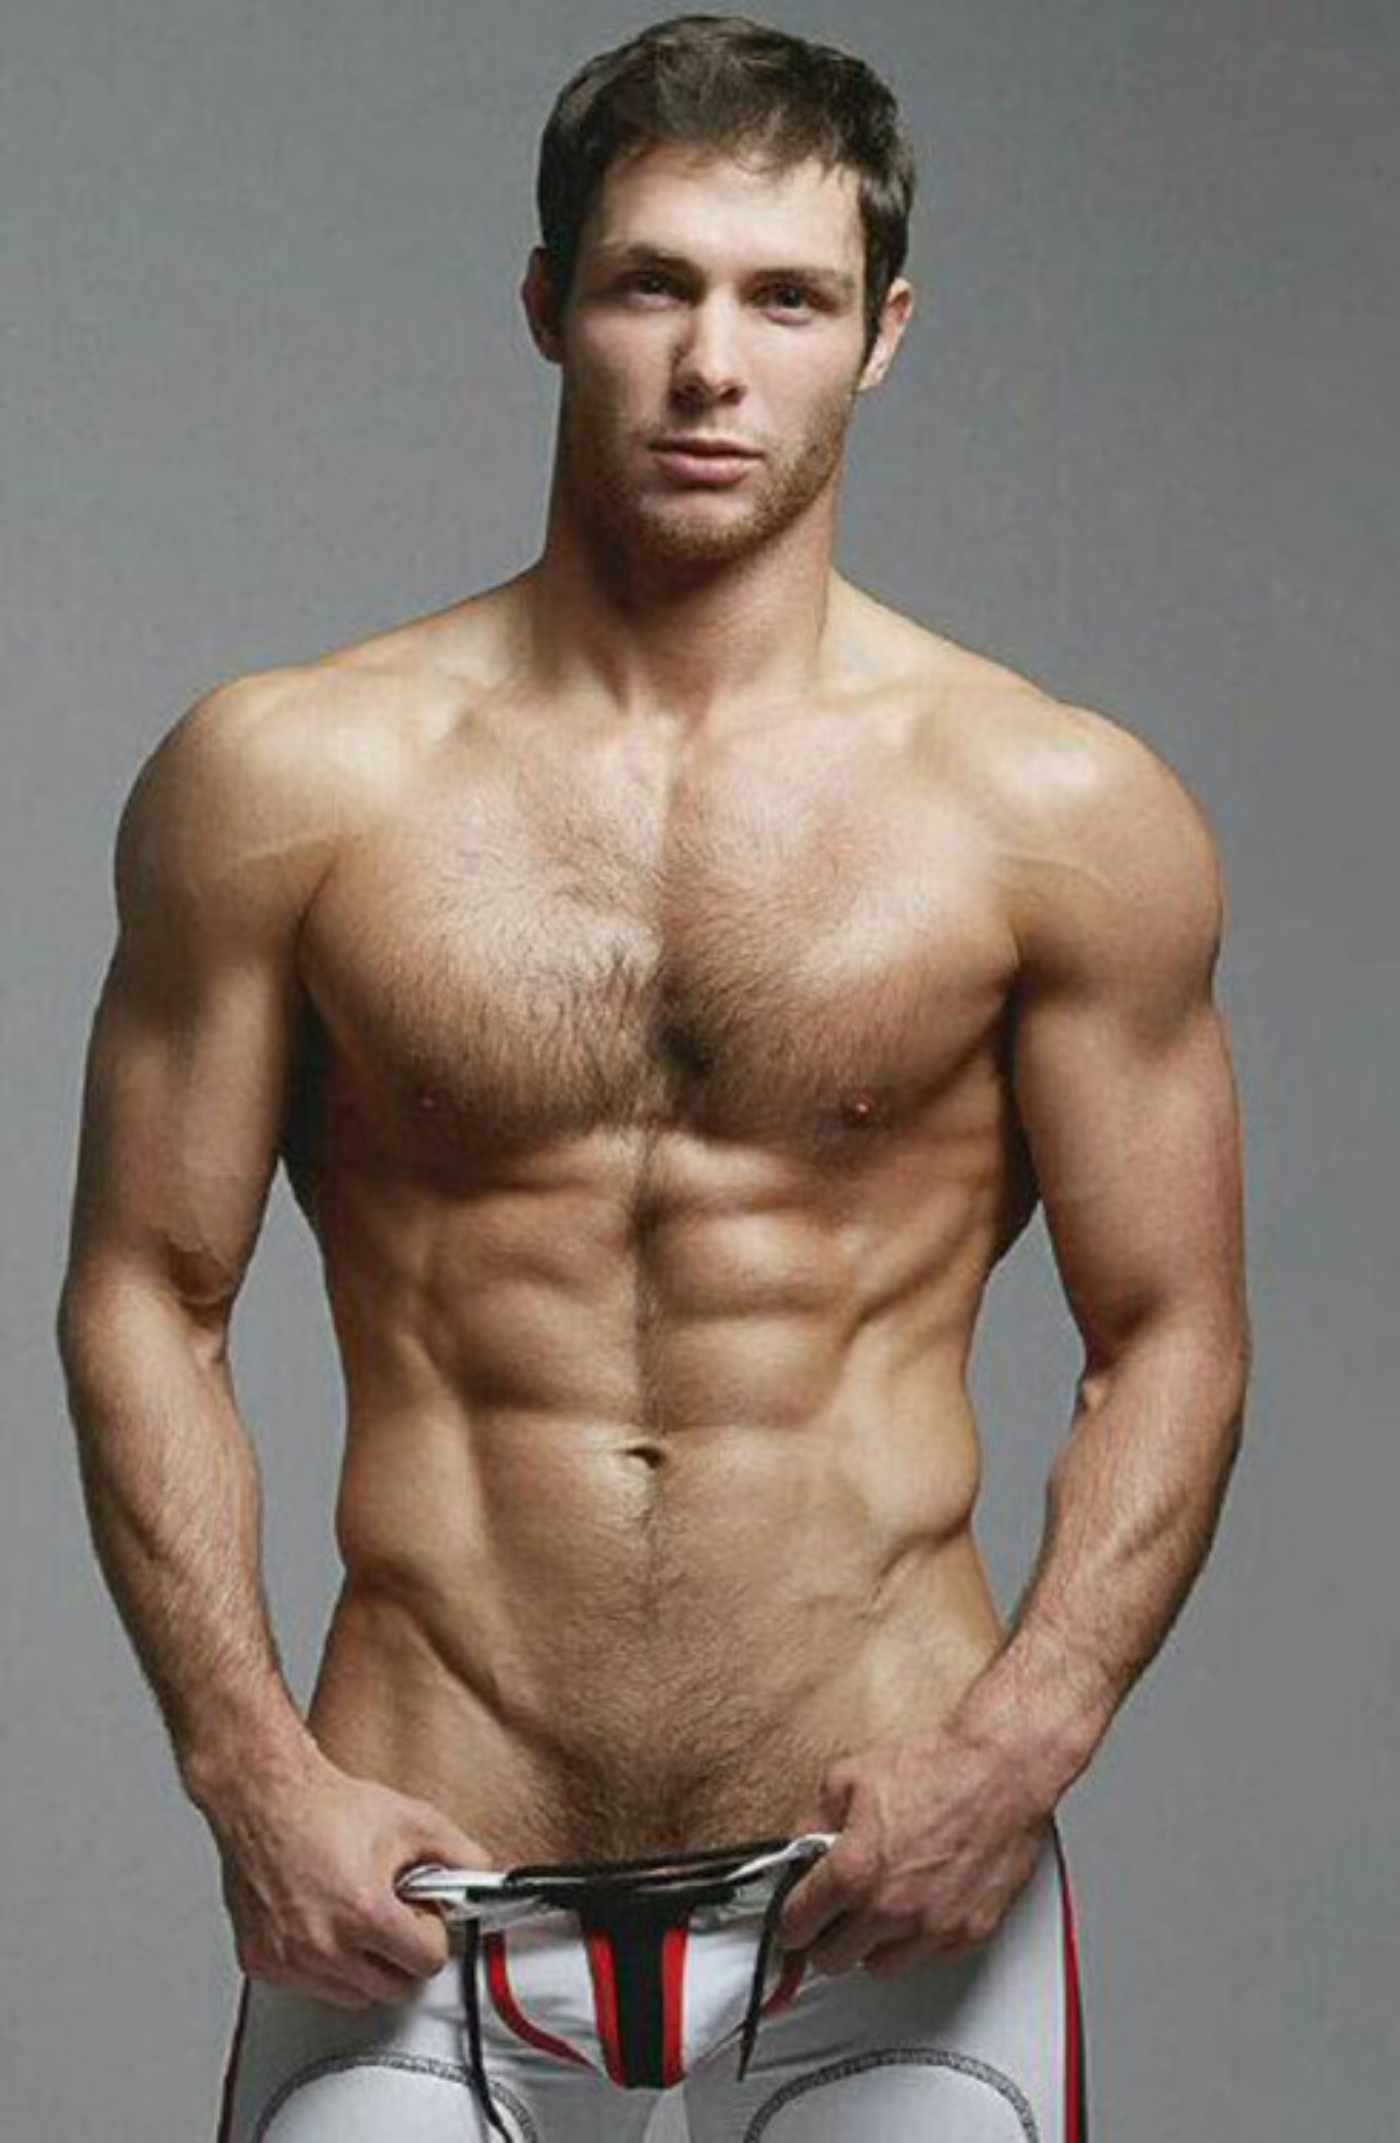 pussy-hot-body-naked-men-ass